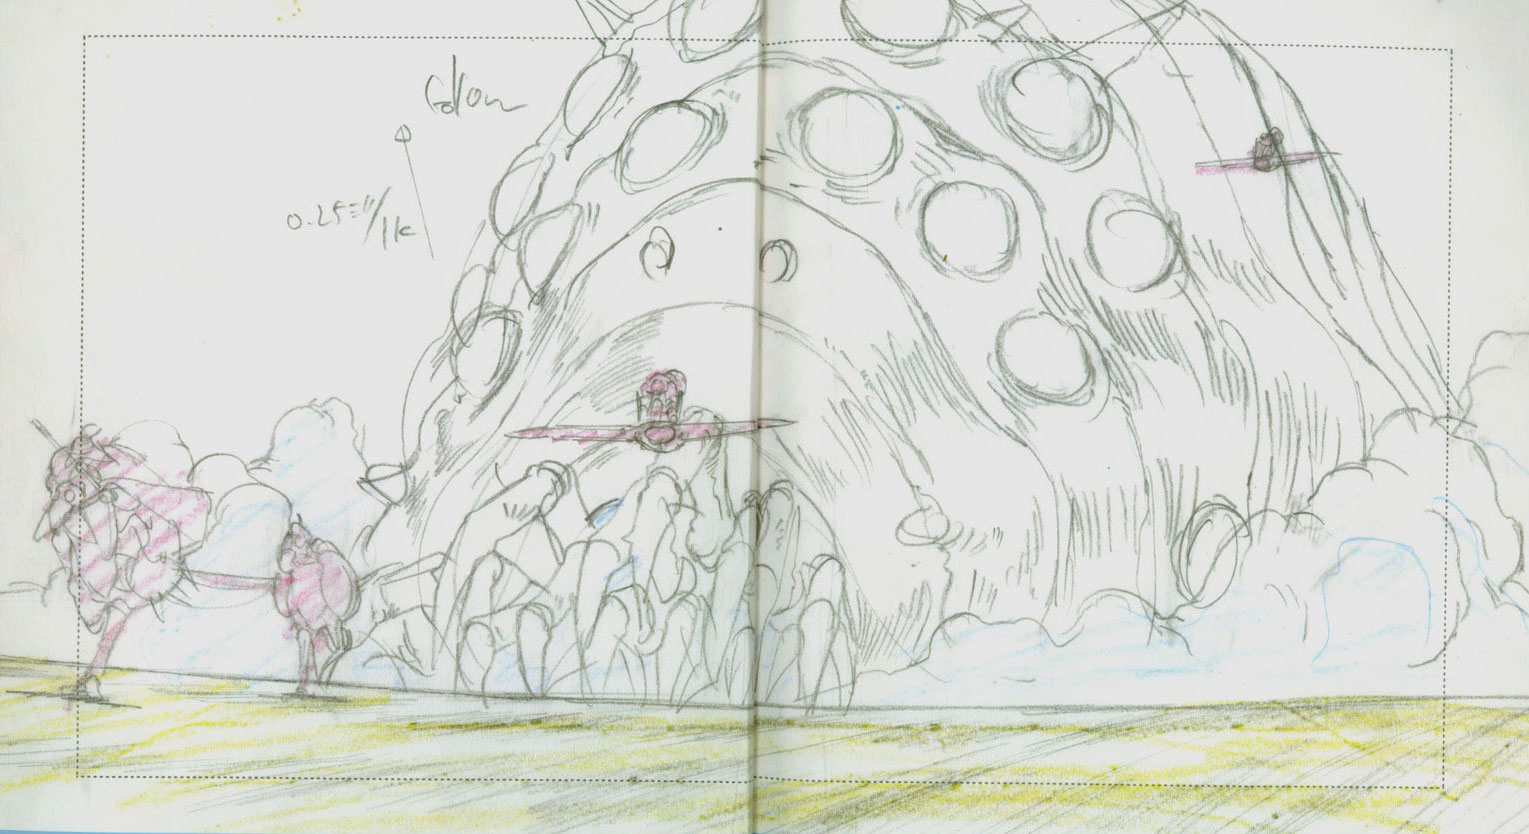 nausicaa_of_the_valley_of_the_wind_concept_art_storyboard_01.jpg